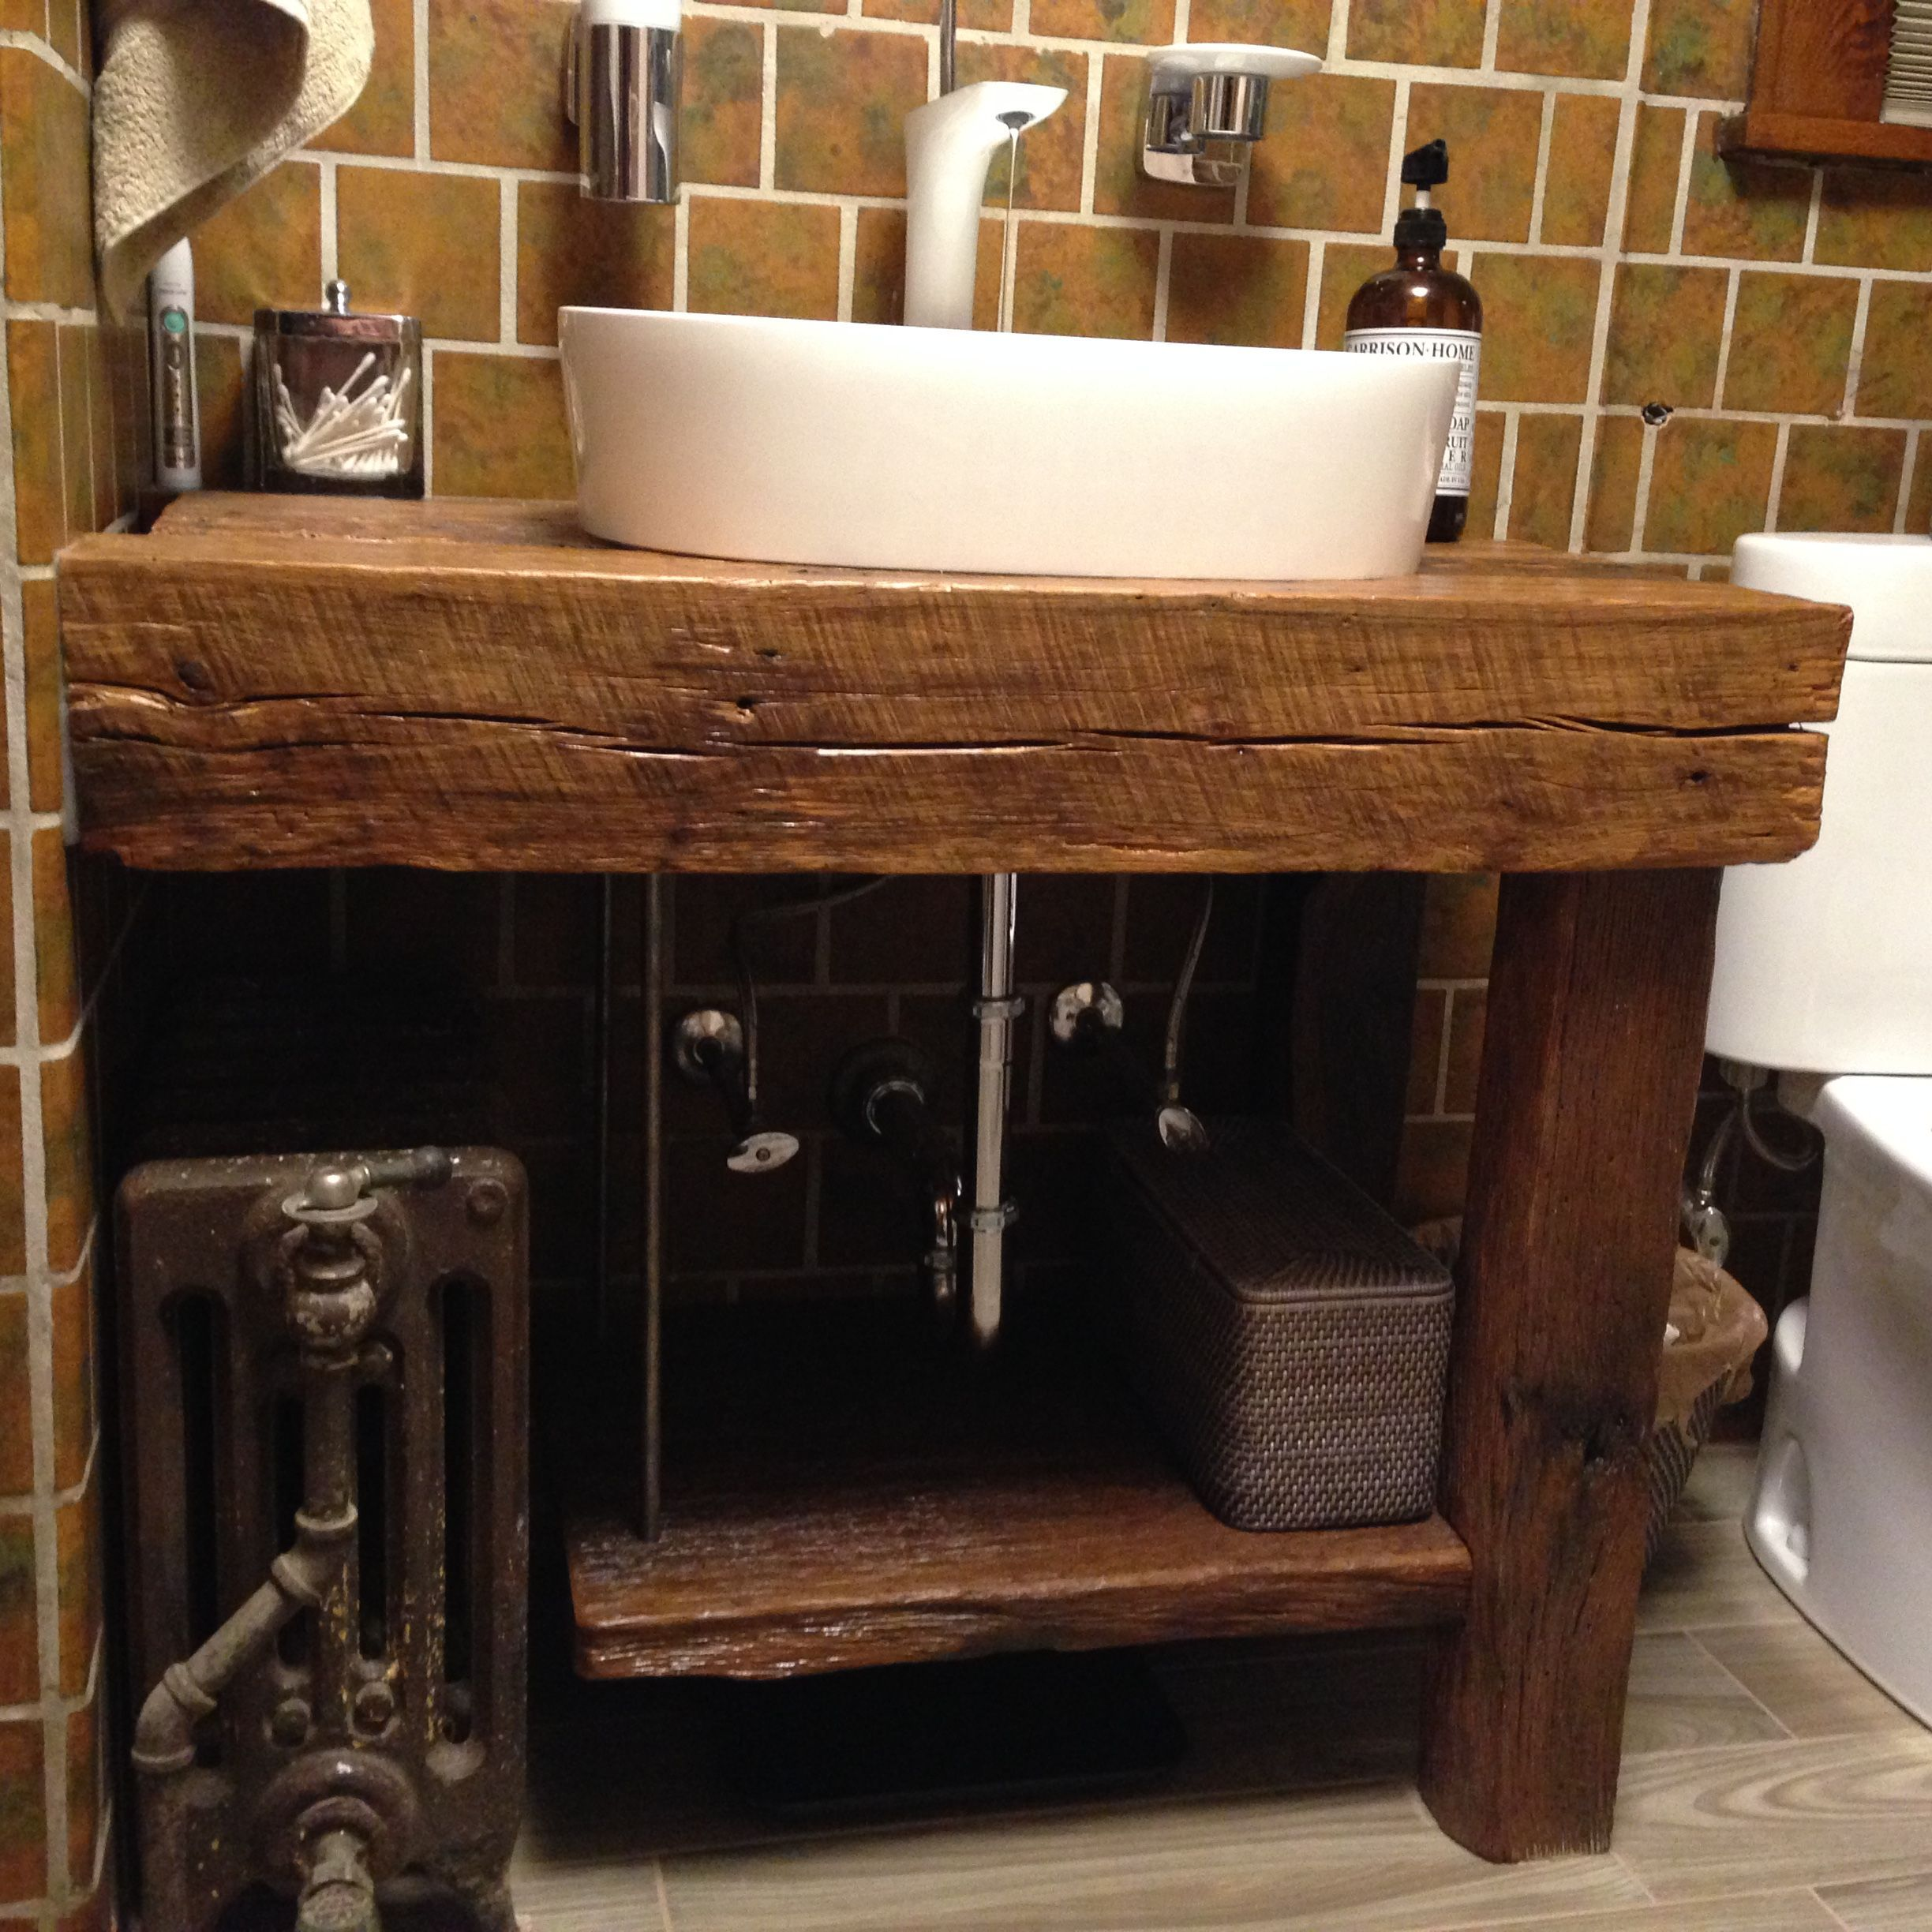 Bathroom Vanities Rustic hand crafted rustic bath vanity - reclaimed barnwood